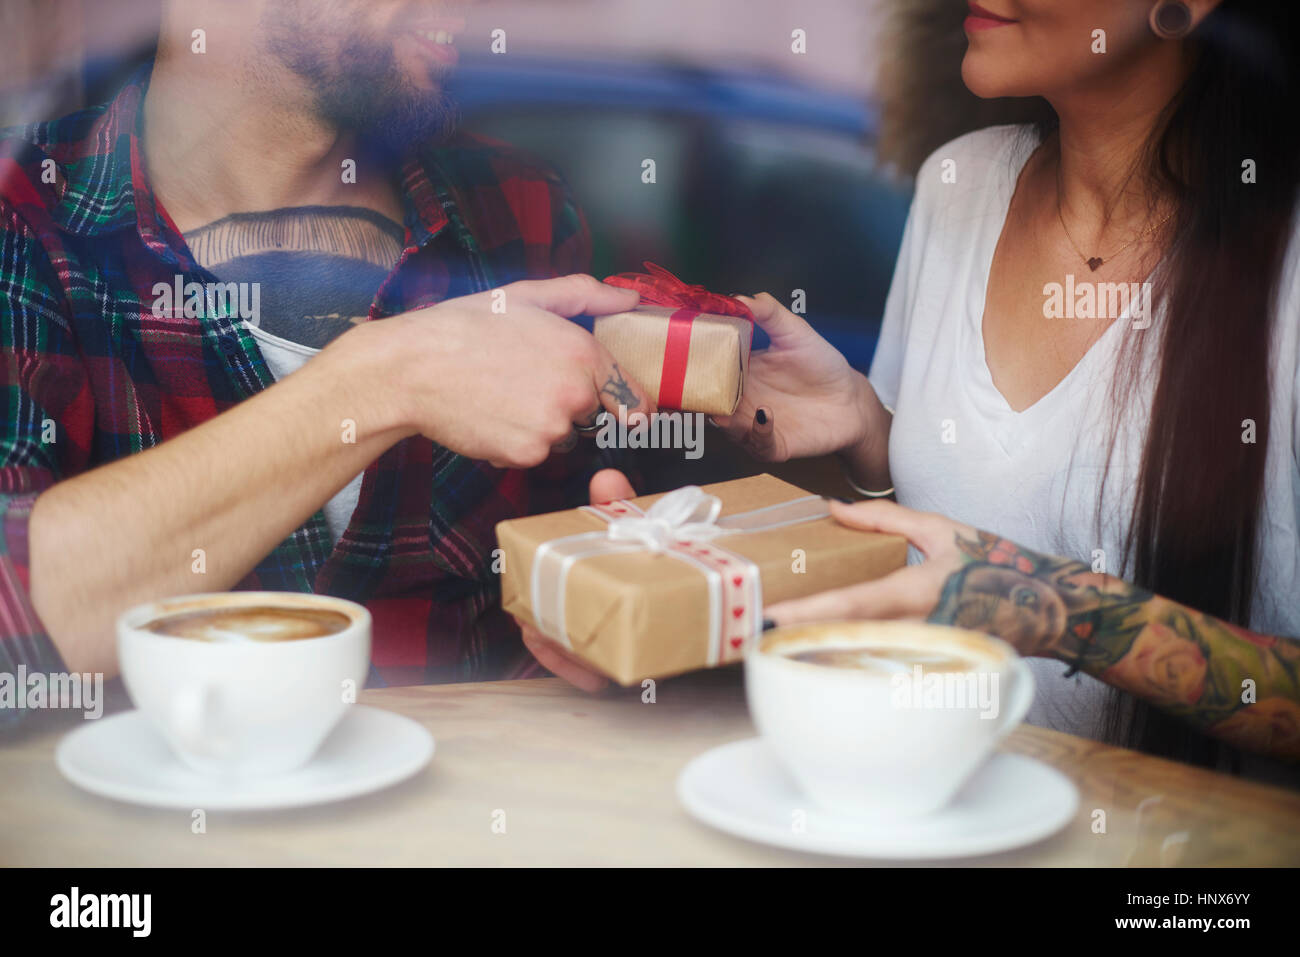 View through window of couple in coffee shop exchanging gifts - Stock Image